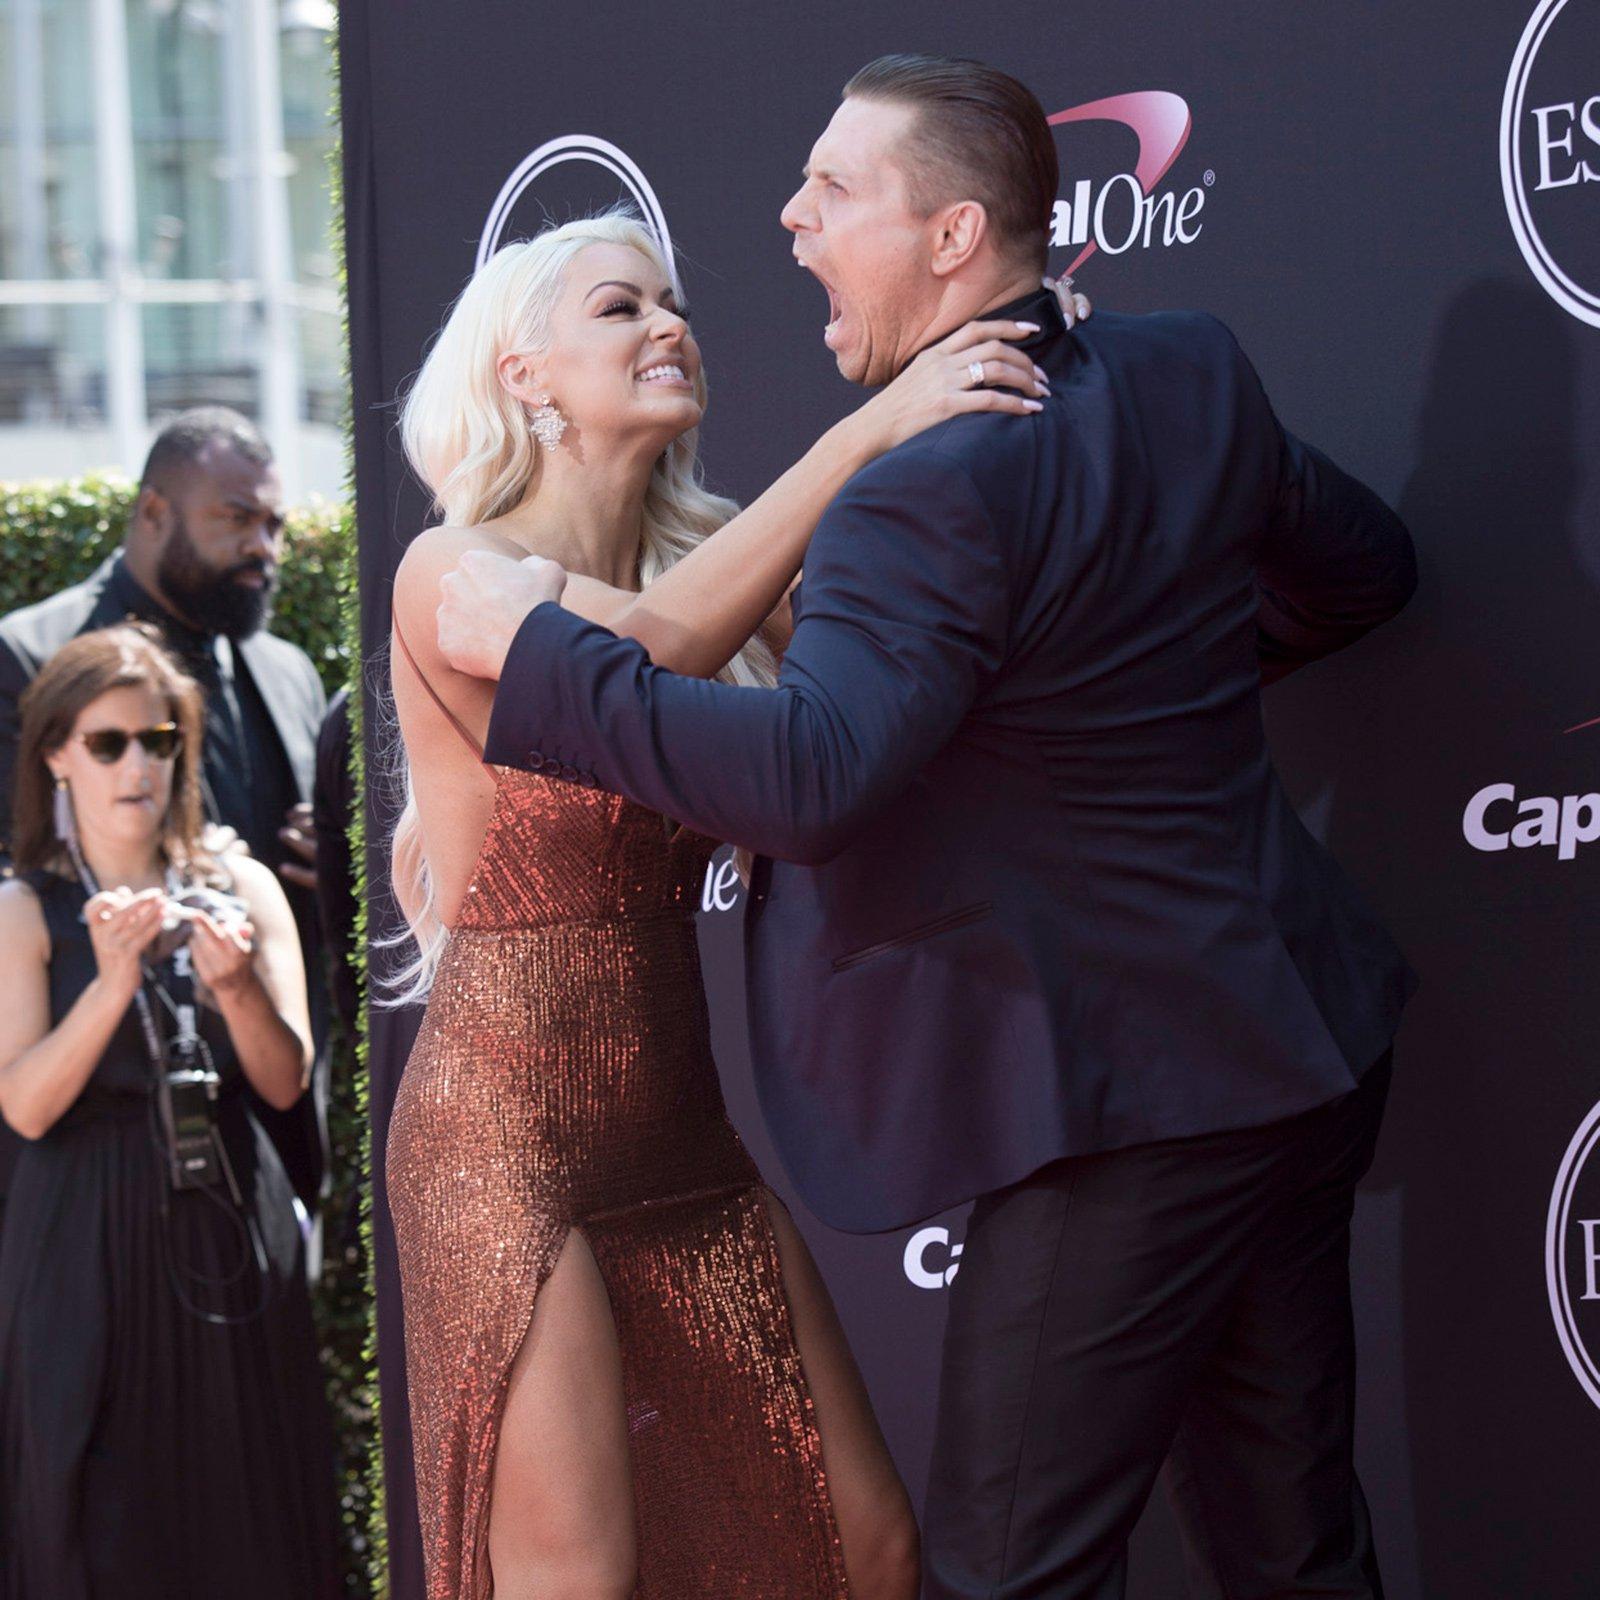 The Miz and Maryse join the red carpet festivities at  the Microsoft Theater in Los Angeles.